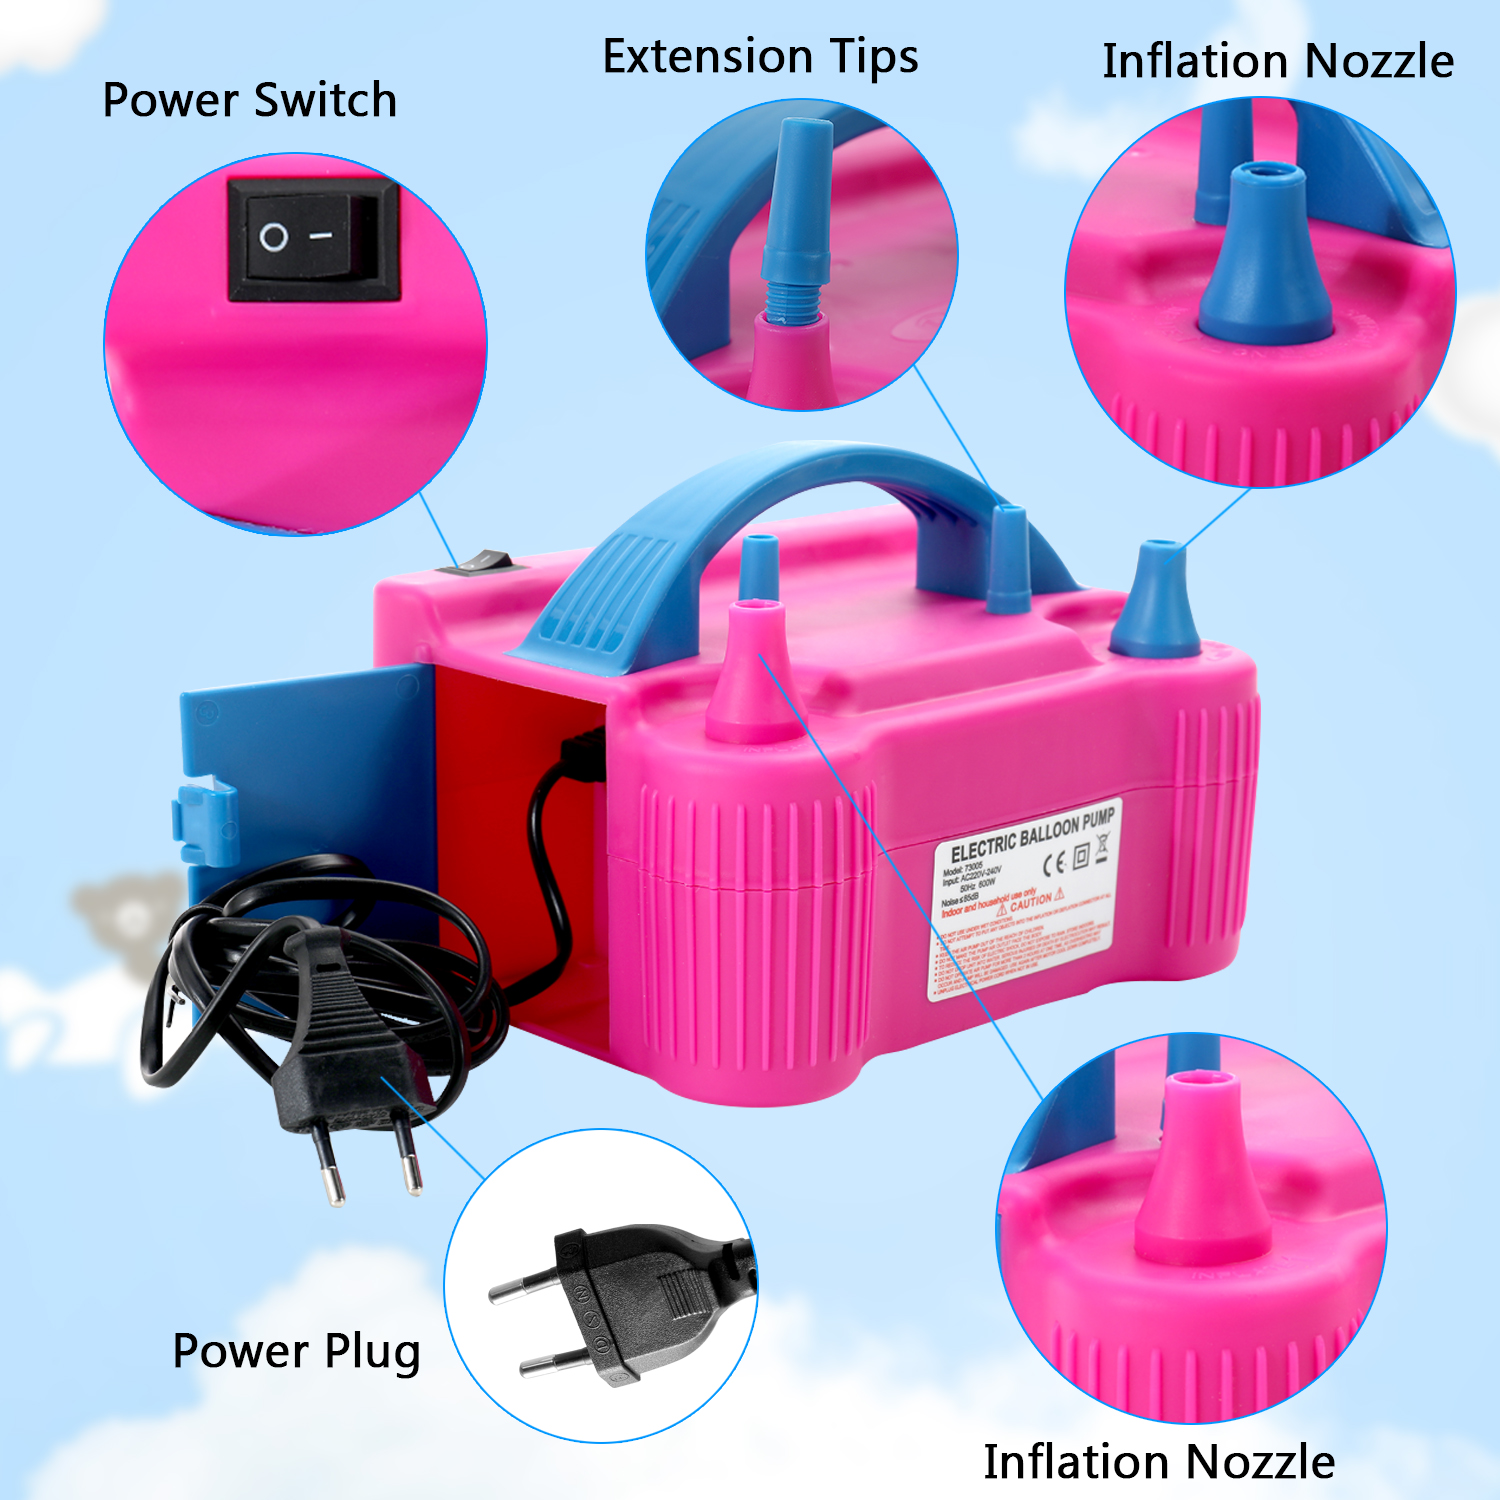 220V-240V Electric High Power Inflating Two Nozzle Air Blower Fast Portable Inflatable Tool Electric Balloon Inflator Pump